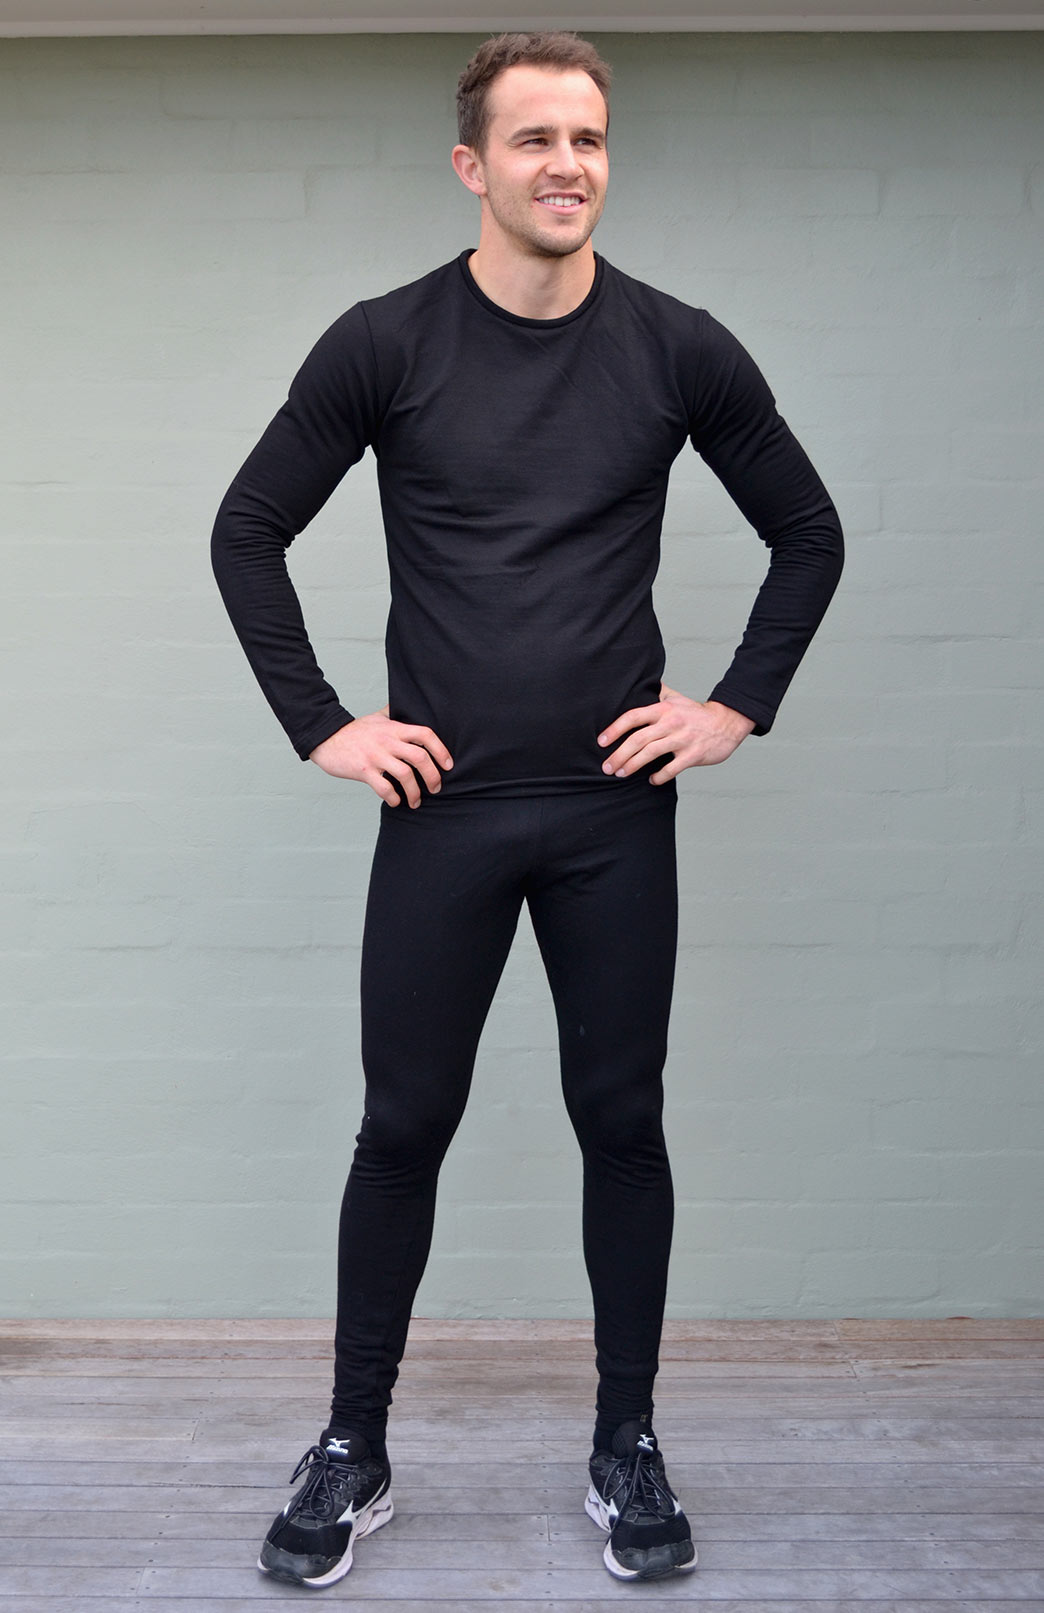 Leggings - 200g - Mens Black Lightweight Superfine Merino Wool Thermal Leggings - Smitten Merino Tasmania Australia